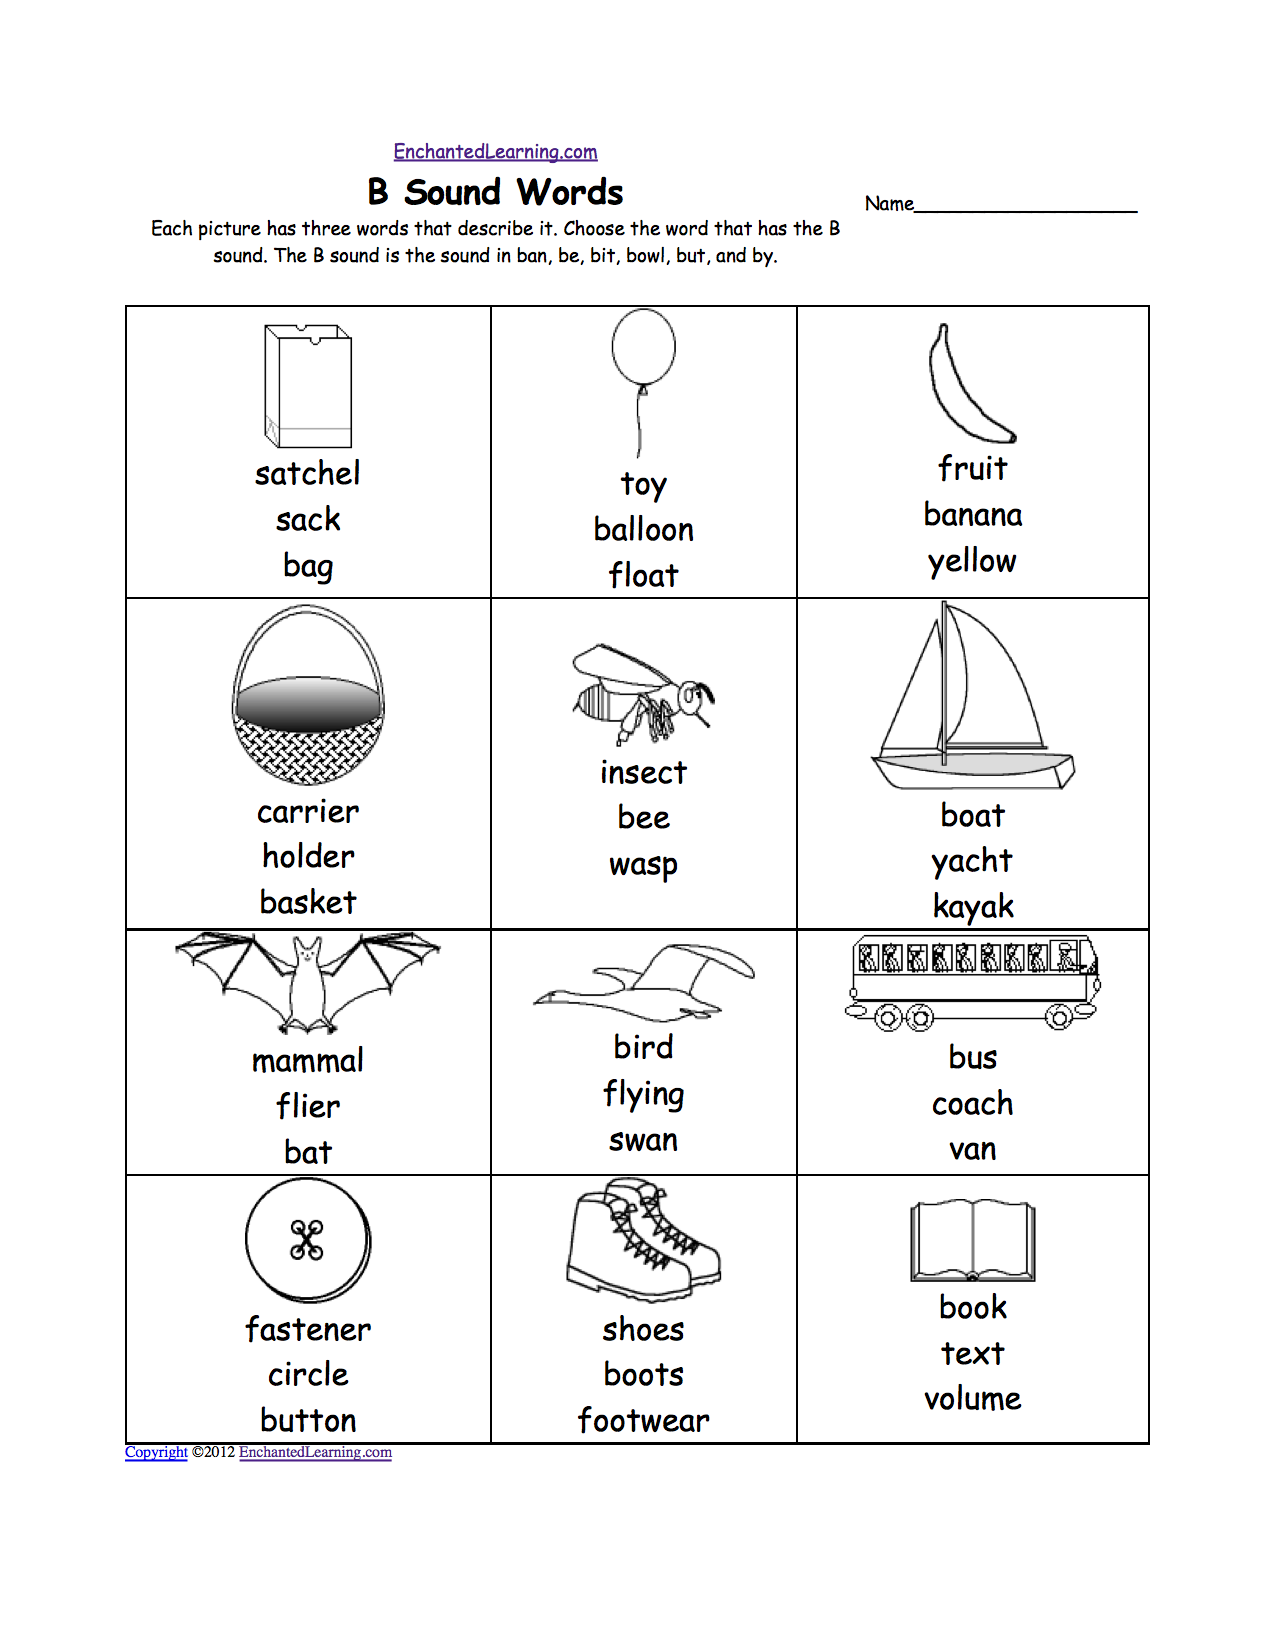 Weirdmailus  Scenic Phonics Worksheets Multiple Choice Worksheets To Print  With Handsome Quotbquot Sound Phonics Worksheet Multiple Choice Each Picture Has Three Words That Describe It Choose The Word That Has A Quotbquot Sound The Quotbquot Sound Is The Sound  With Cool Multiplication Worksheets Generator Also Map Skills Worksheets Th Grade In Addition Algebra Worksheets With Answer Key And Word Of The Day Worksheet As Well As Cause And Effect Worksheets For Th Grade Additionally Mayan Math Worksheet From Enchantedlearningcom With Weirdmailus  Handsome Phonics Worksheets Multiple Choice Worksheets To Print  With Cool Quotbquot Sound Phonics Worksheet Multiple Choice Each Picture Has Three Words That Describe It Choose The Word That Has A Quotbquot Sound The Quotbquot Sound Is The Sound  And Scenic Multiplication Worksheets Generator Also Map Skills Worksheets Th Grade In Addition Algebra Worksheets With Answer Key From Enchantedlearningcom